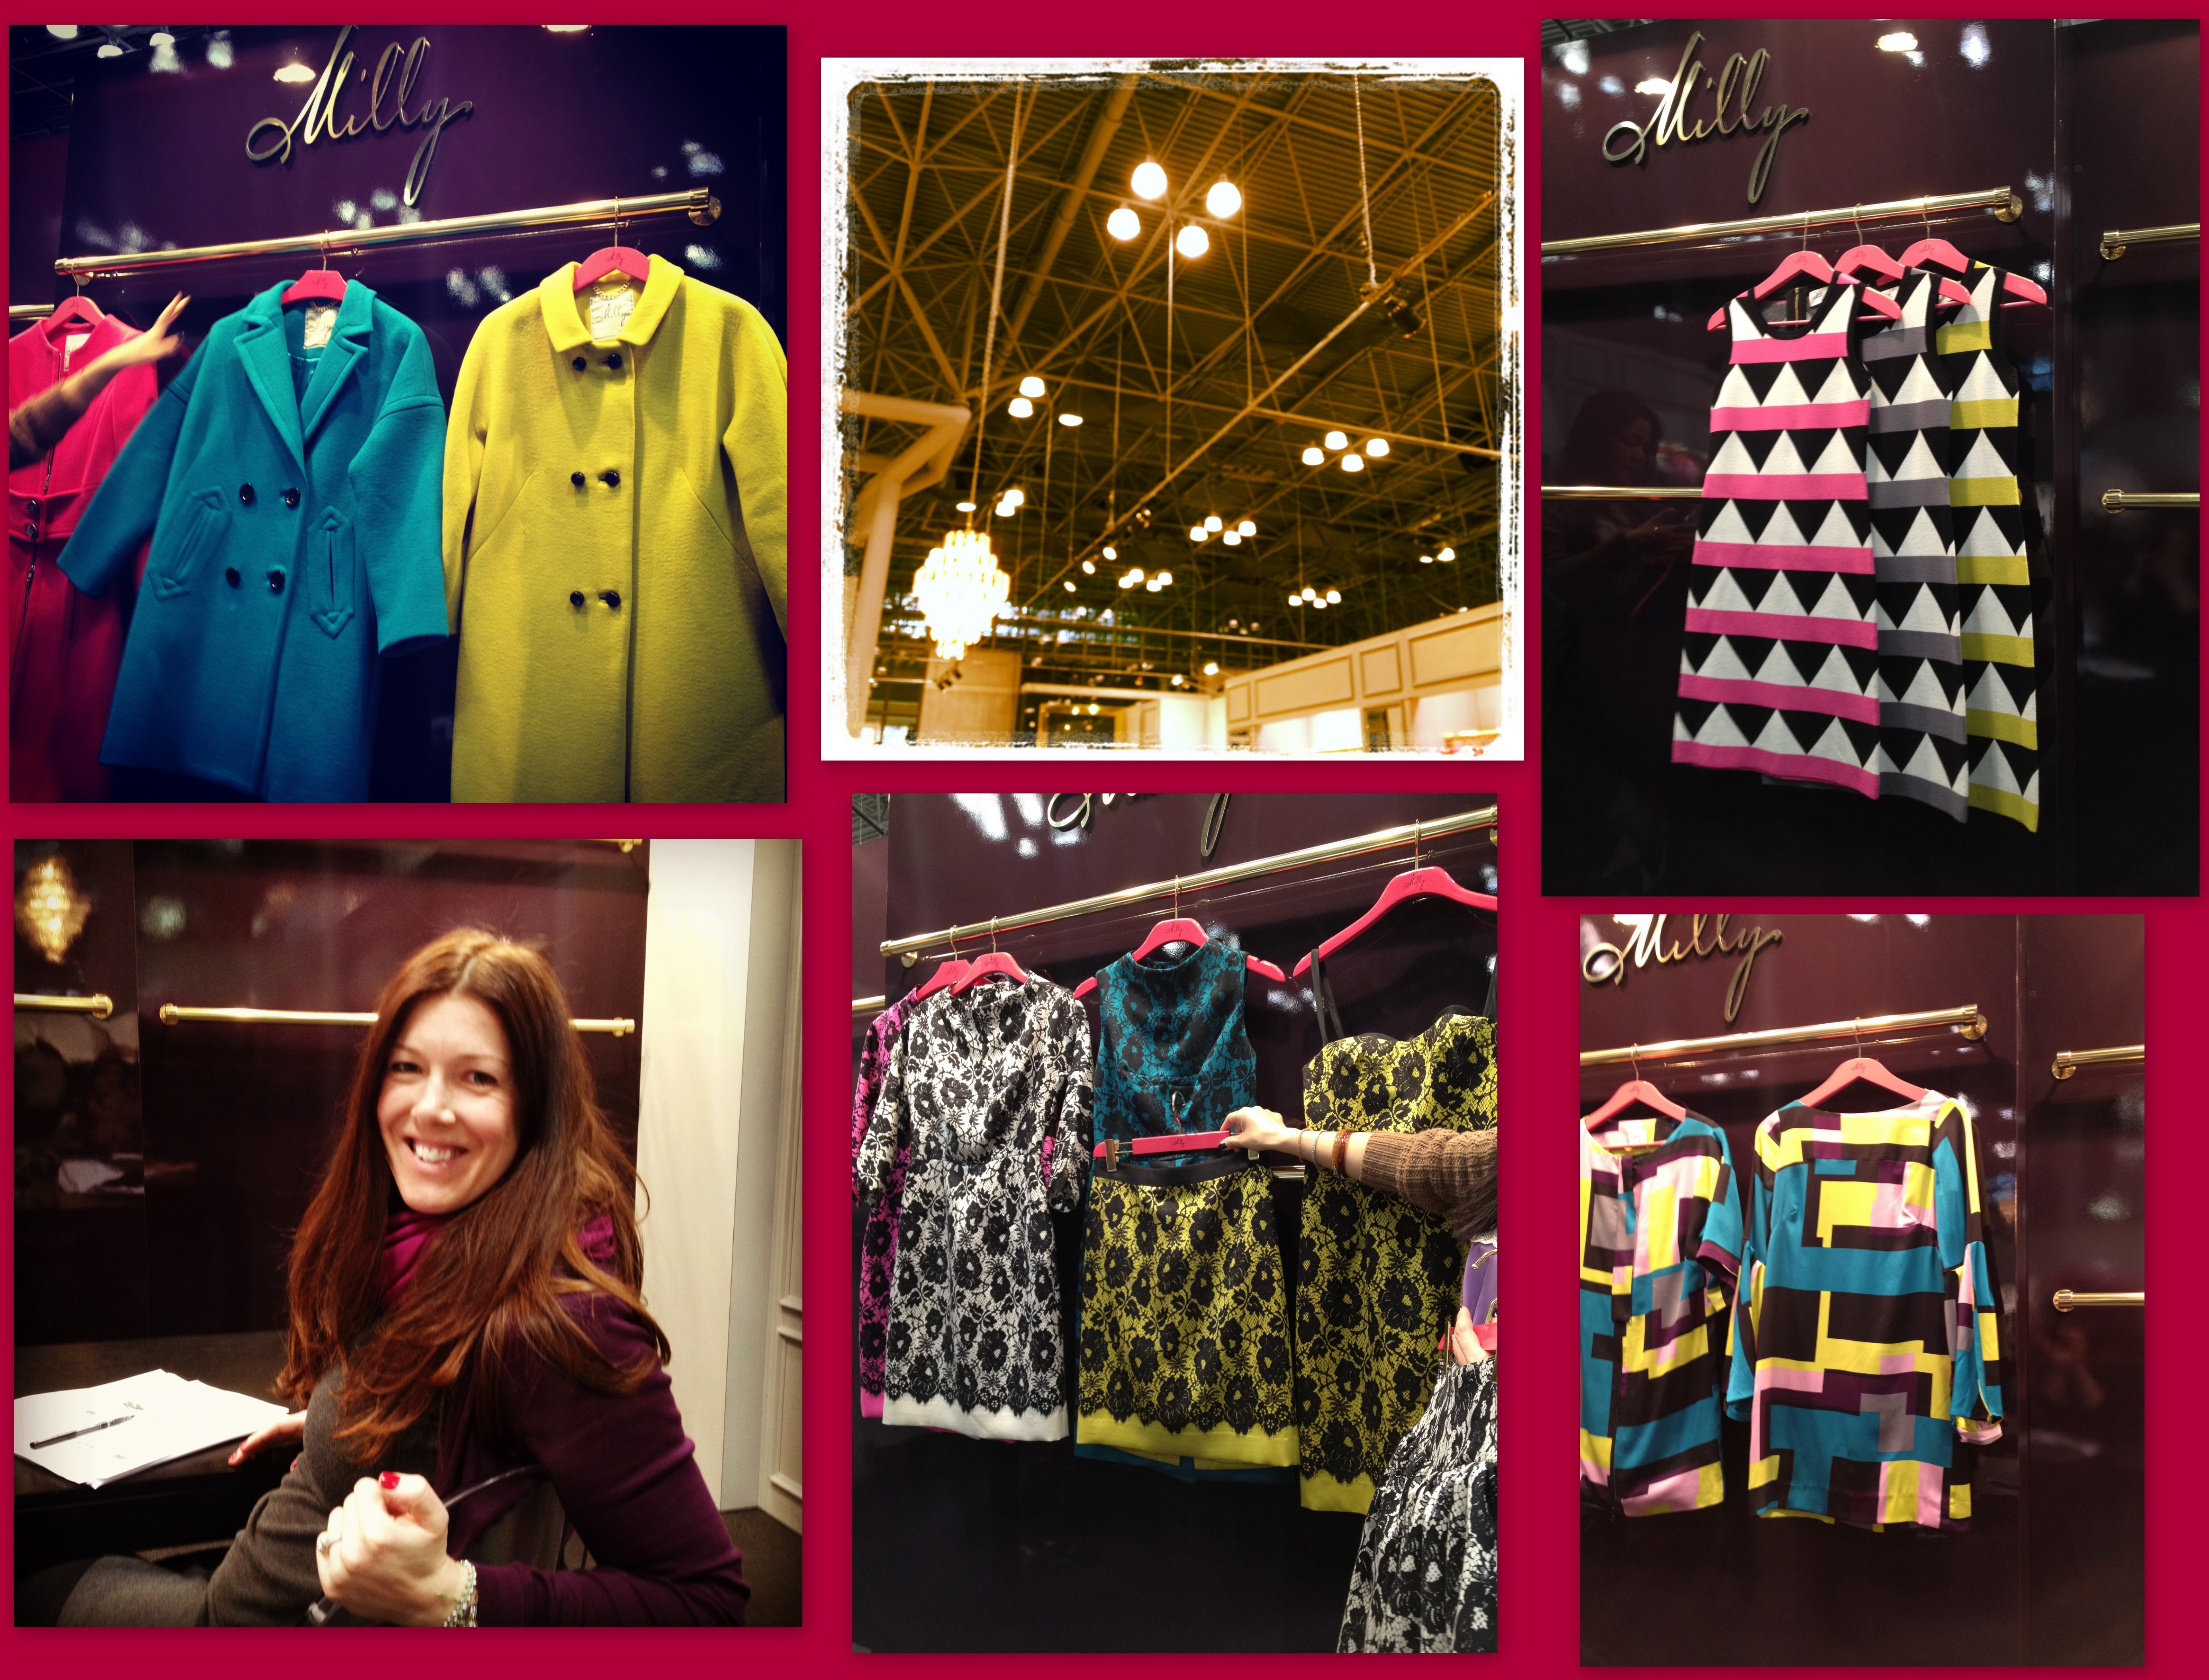 Amazing brights and patterns at Milly!